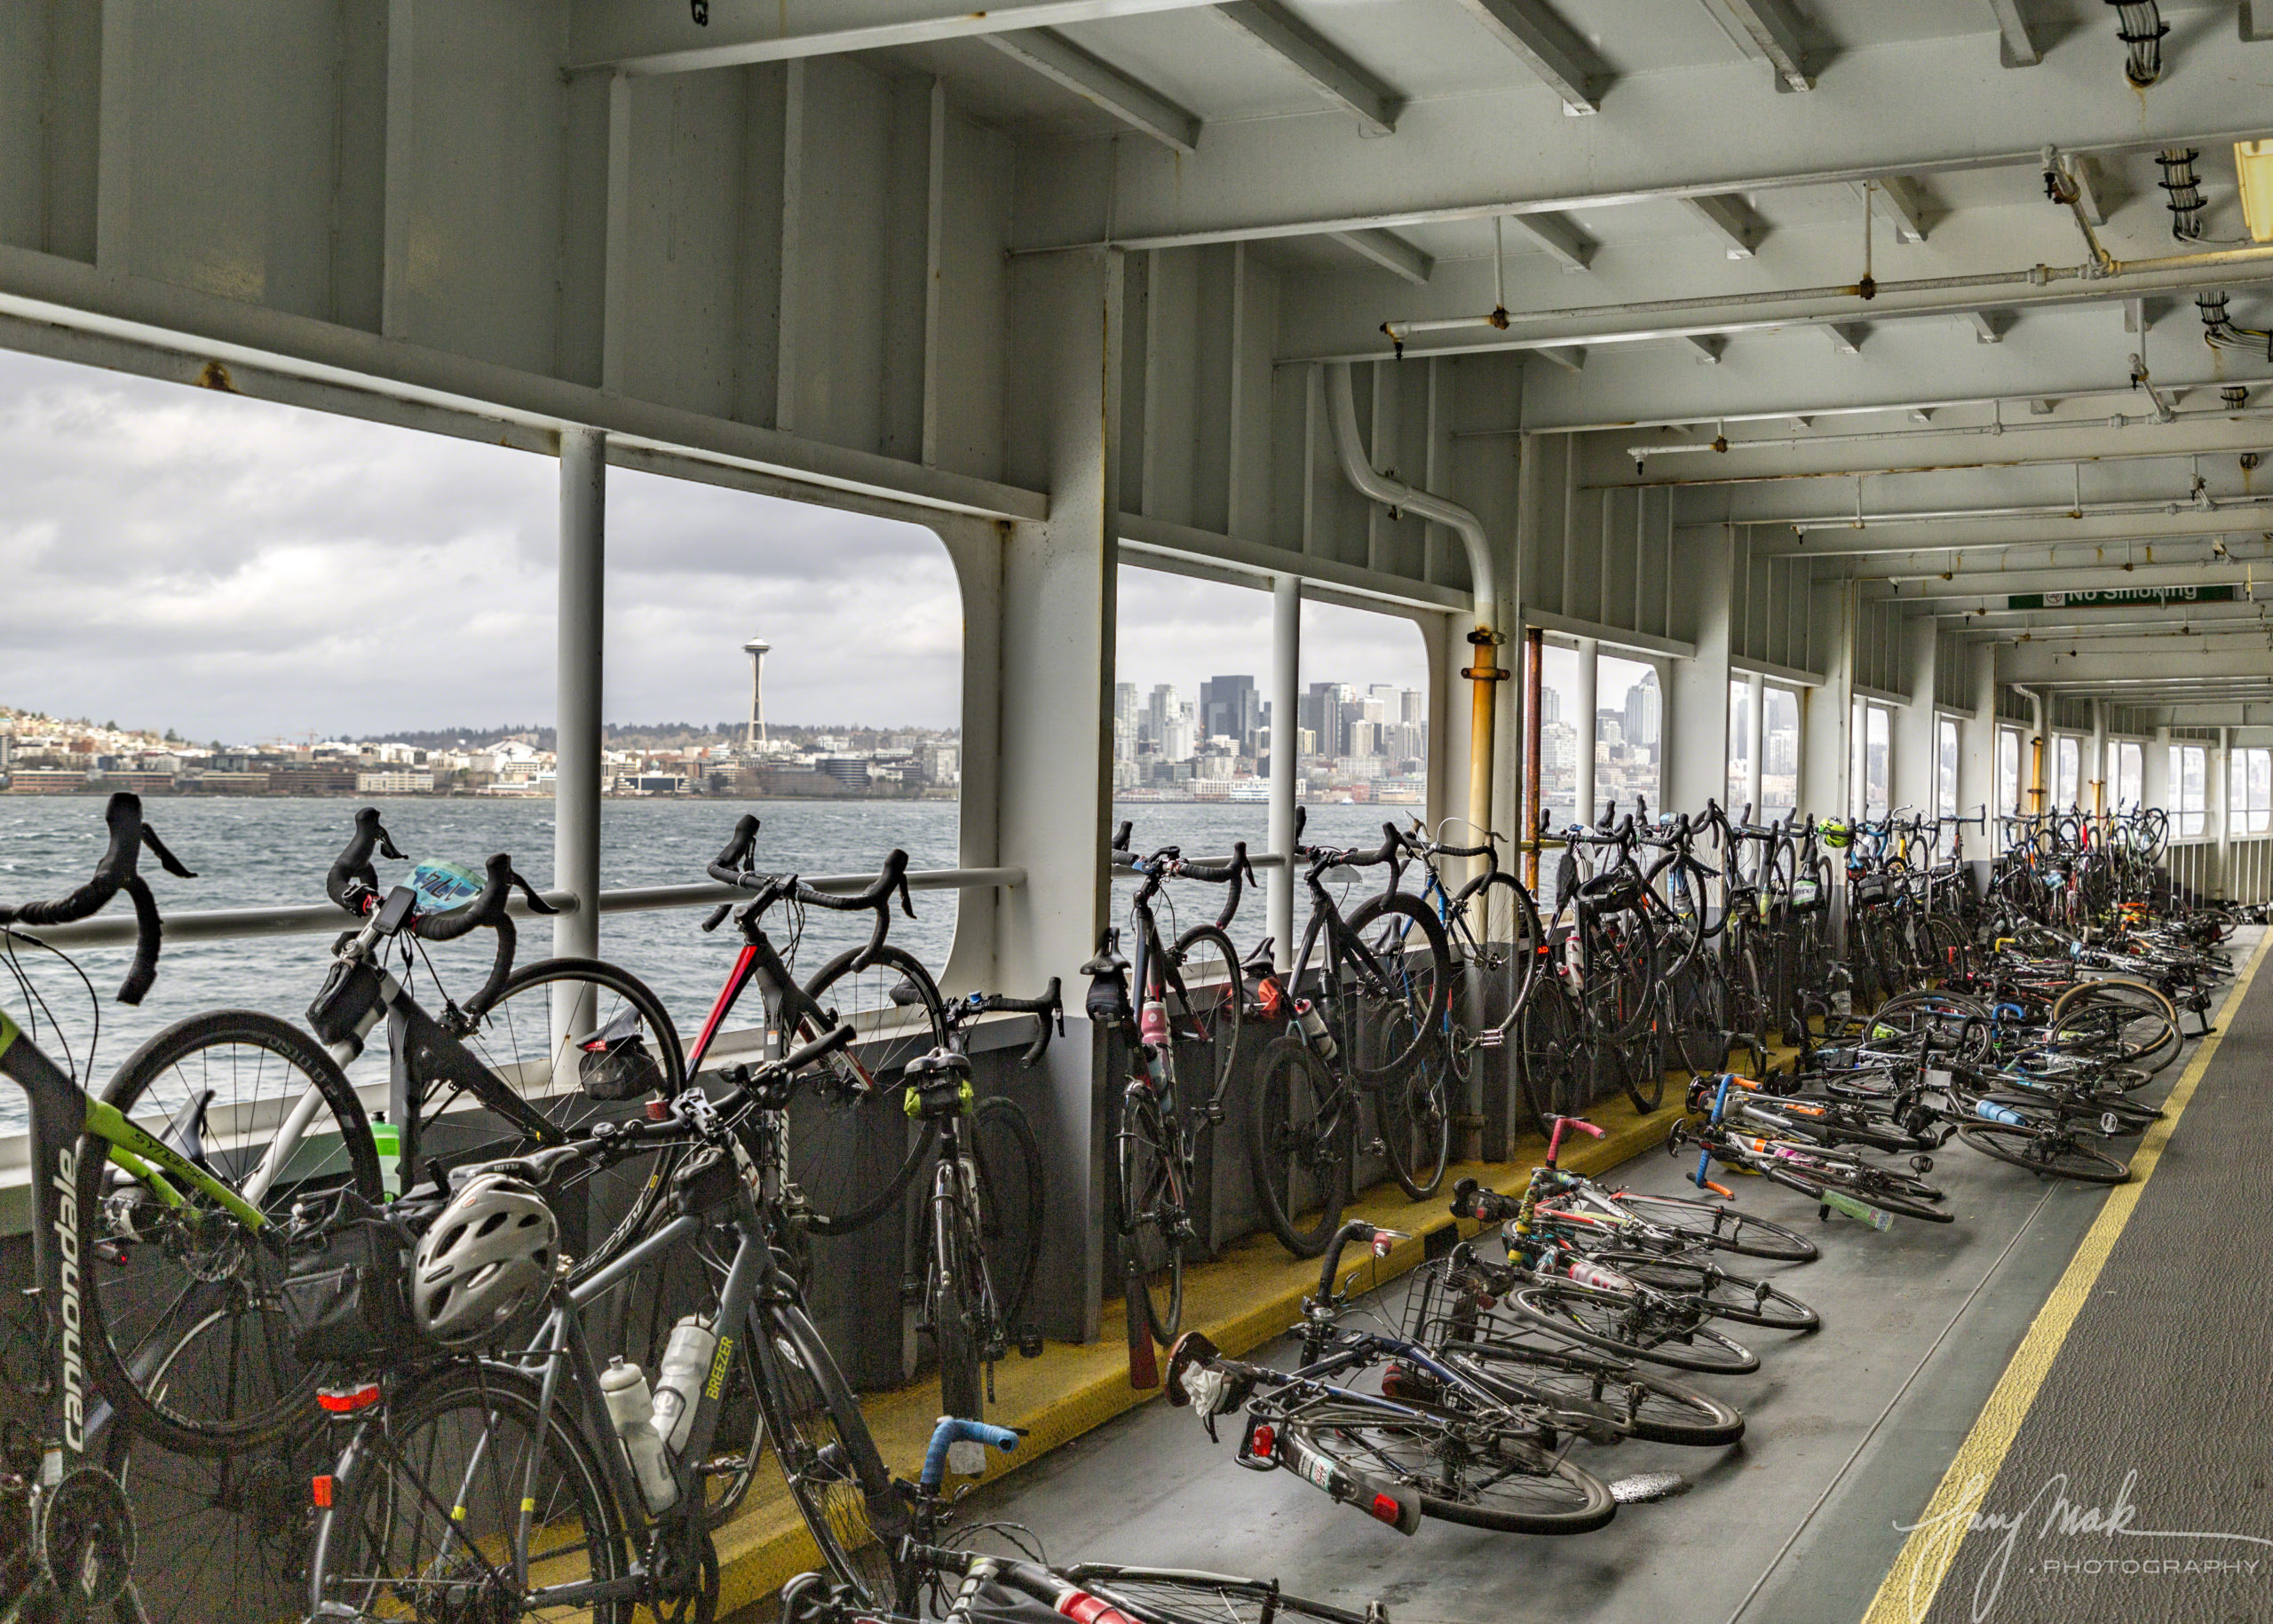 Bicycle Ladened Ferry (2019)